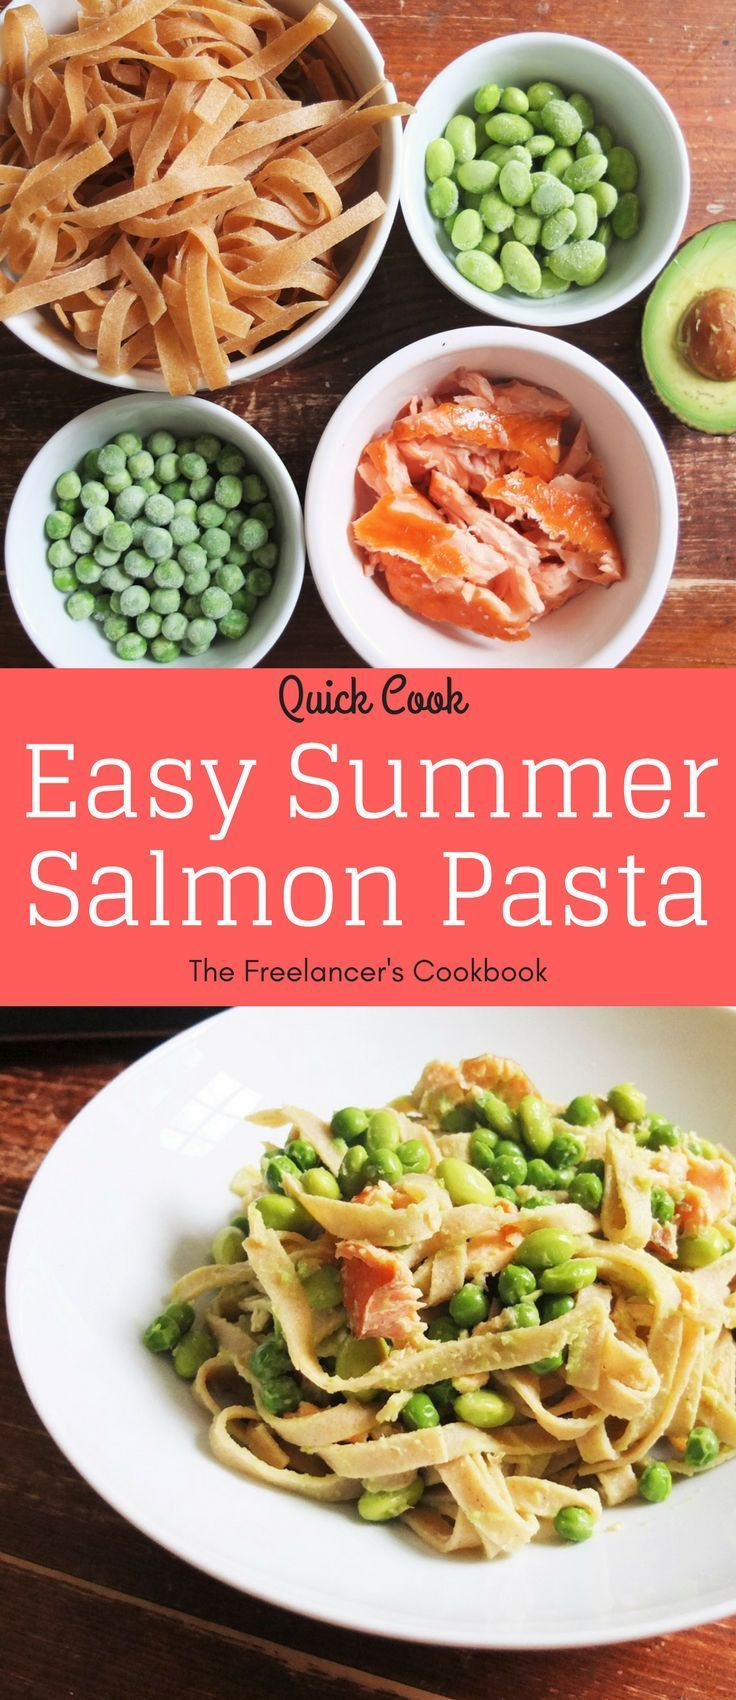 This easy summer pasta dish makes a quick and healthy weeknight dinner in less than 15 minutes. It contains wholewheat tagliatelle, hot smoked salmon, soya beans, peas and avocado. Dairy free.